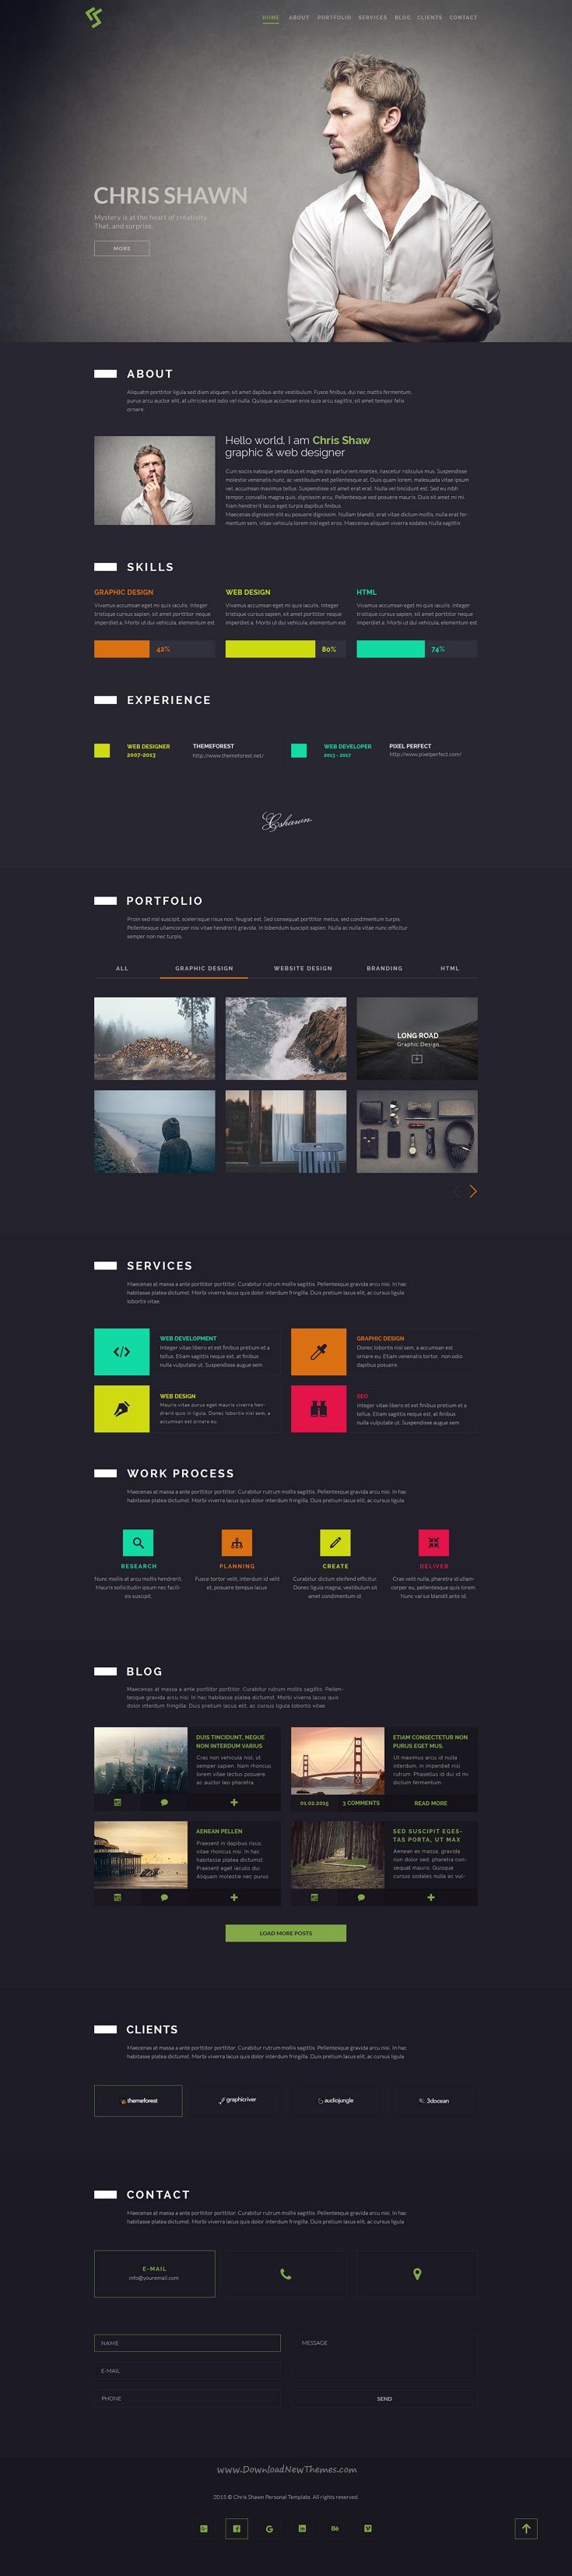 ideas about one page website on pinterest website layout design web